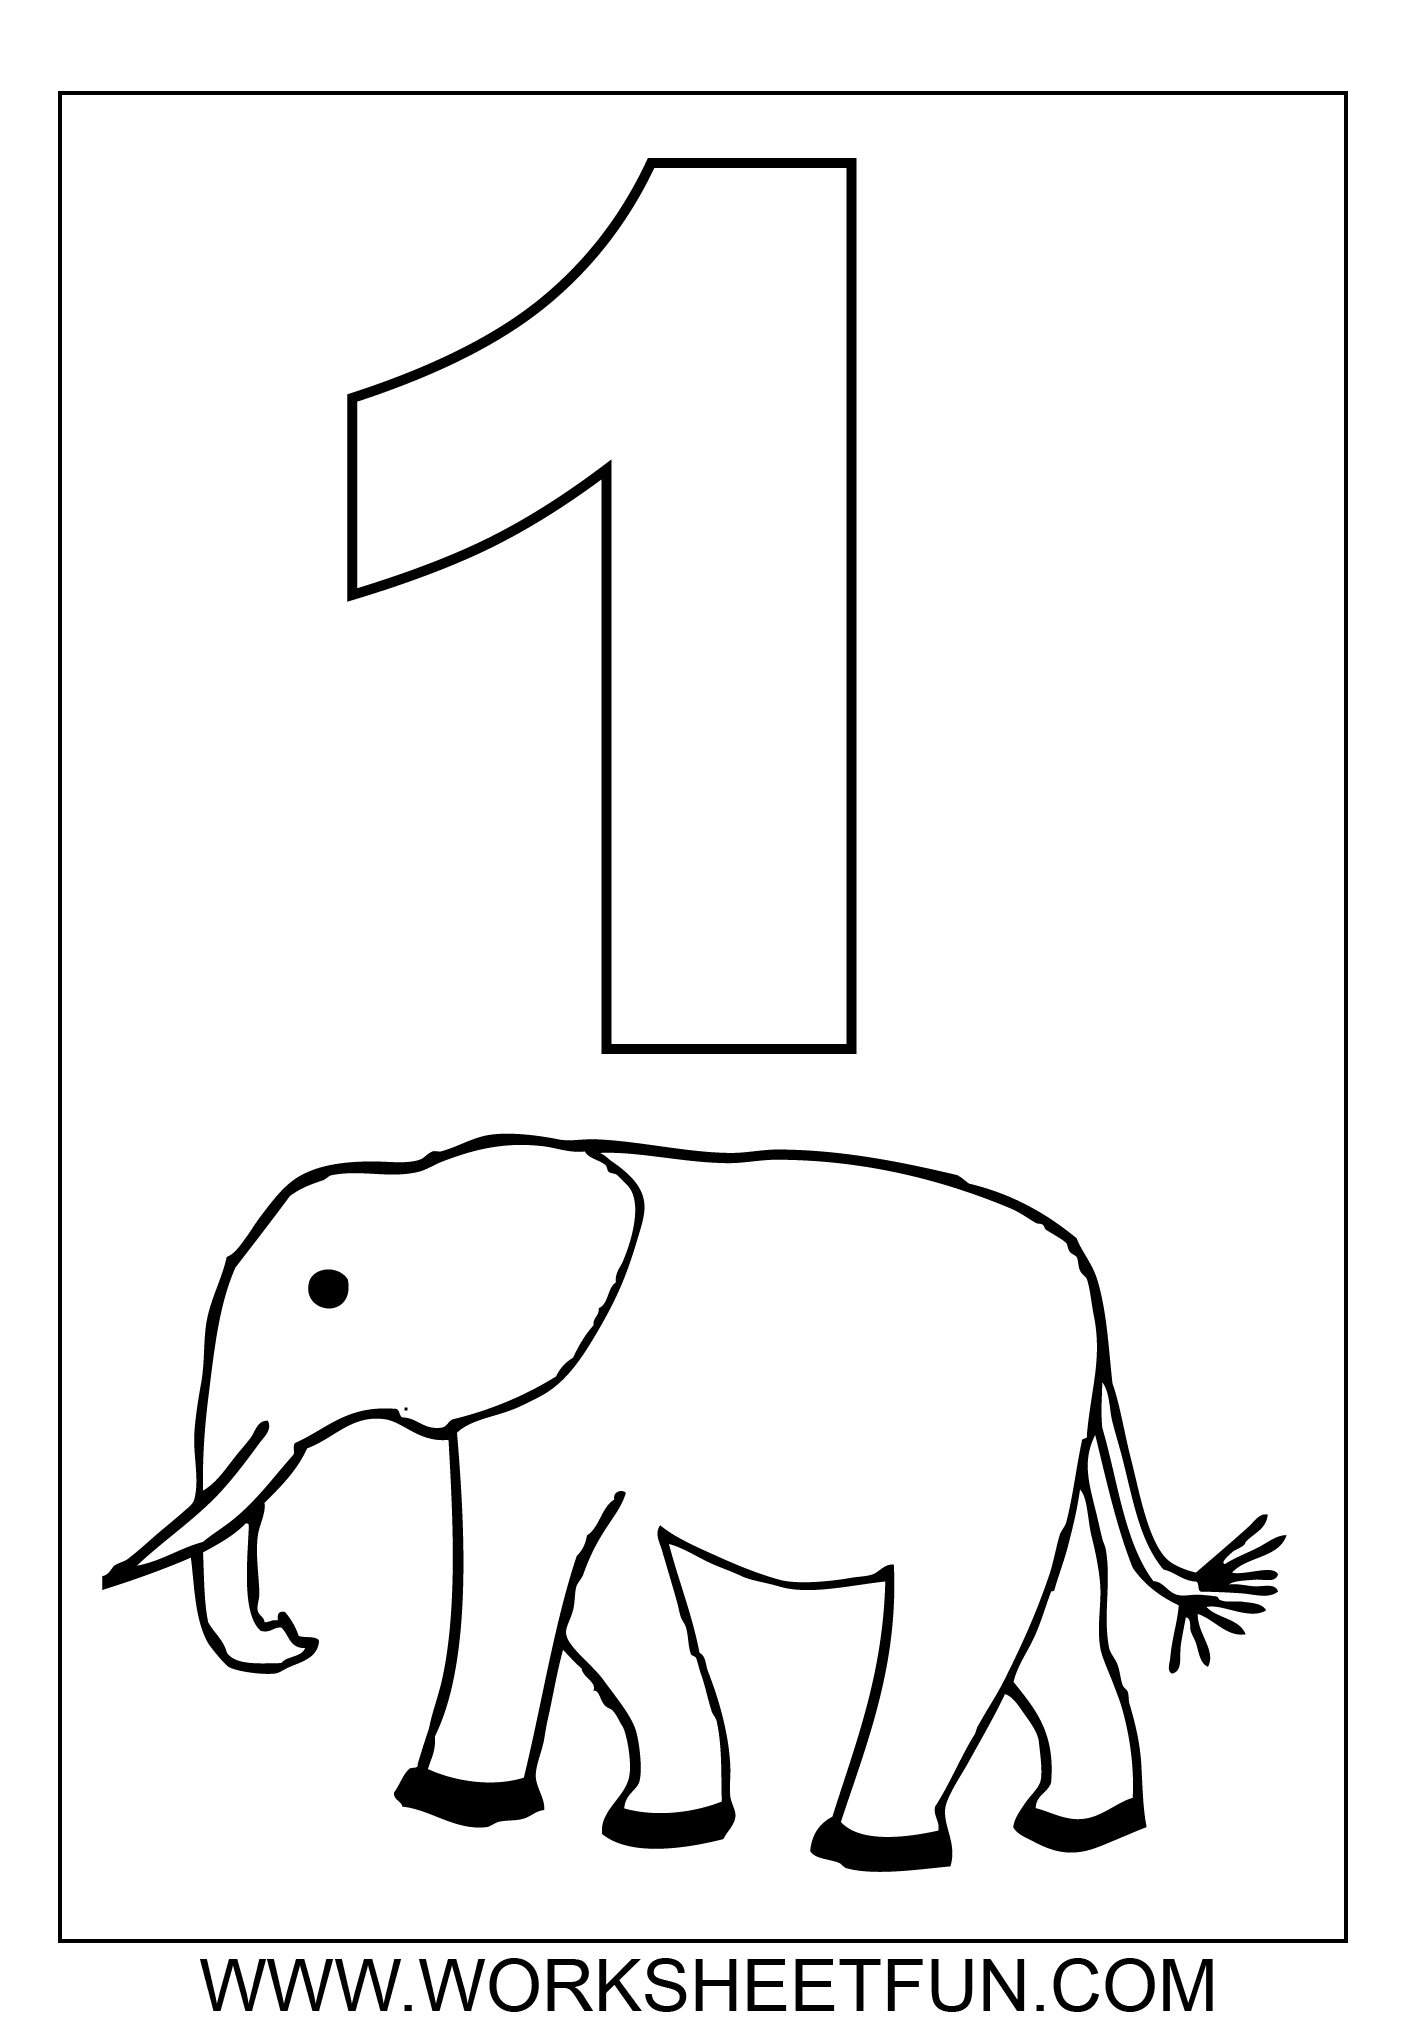 coloring pages numbers easy color by numbers coloring pages getcoloringpagescom coloring numbers pages